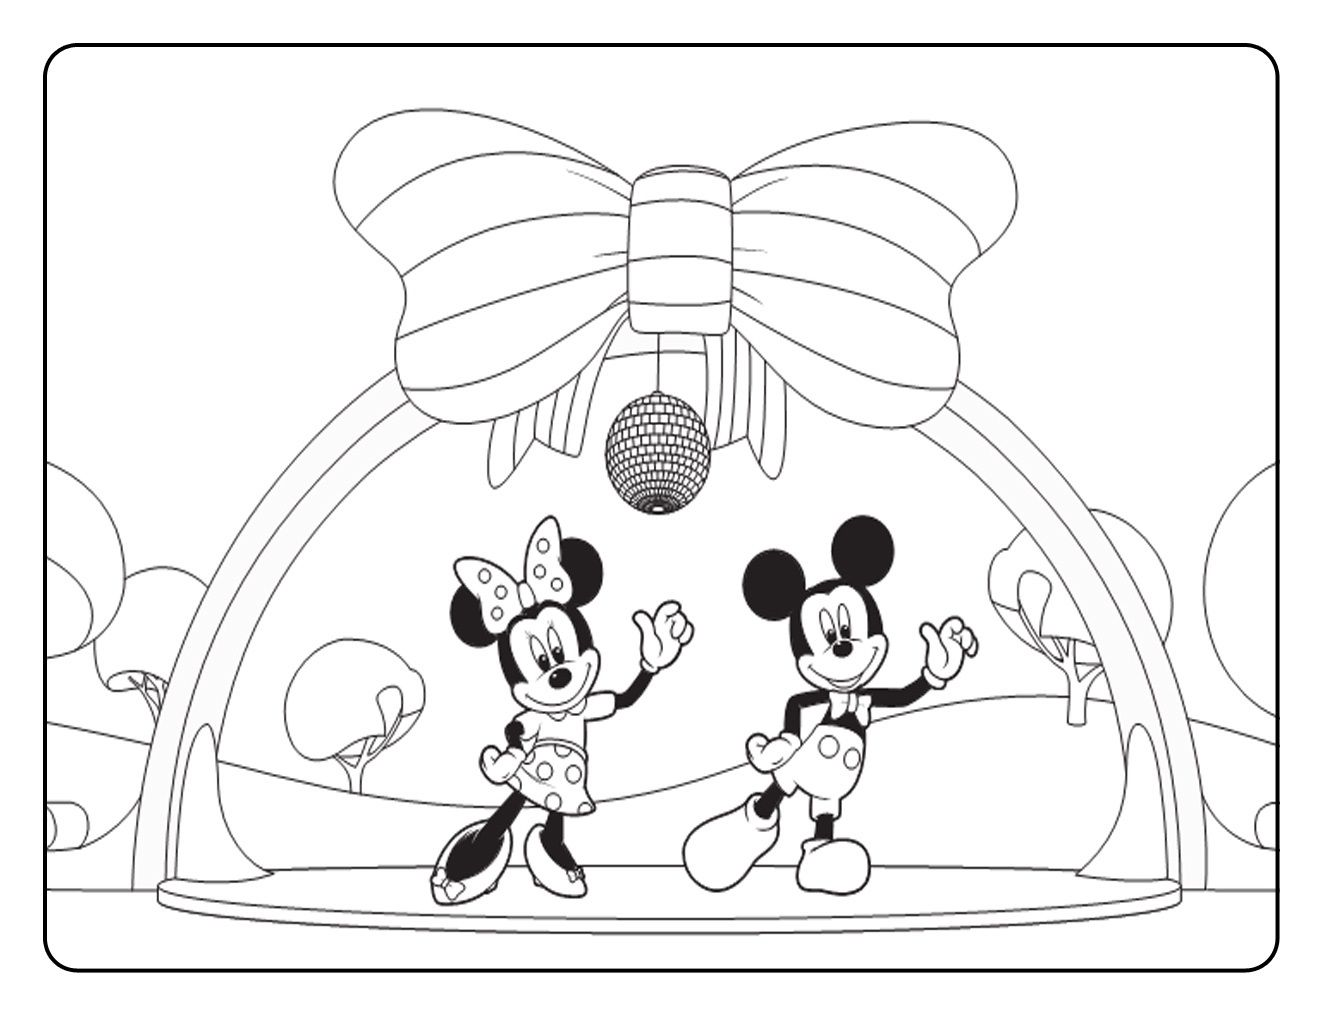 Free Printable Mickey Mouse Coloring Pages For Kids | Wedding ...